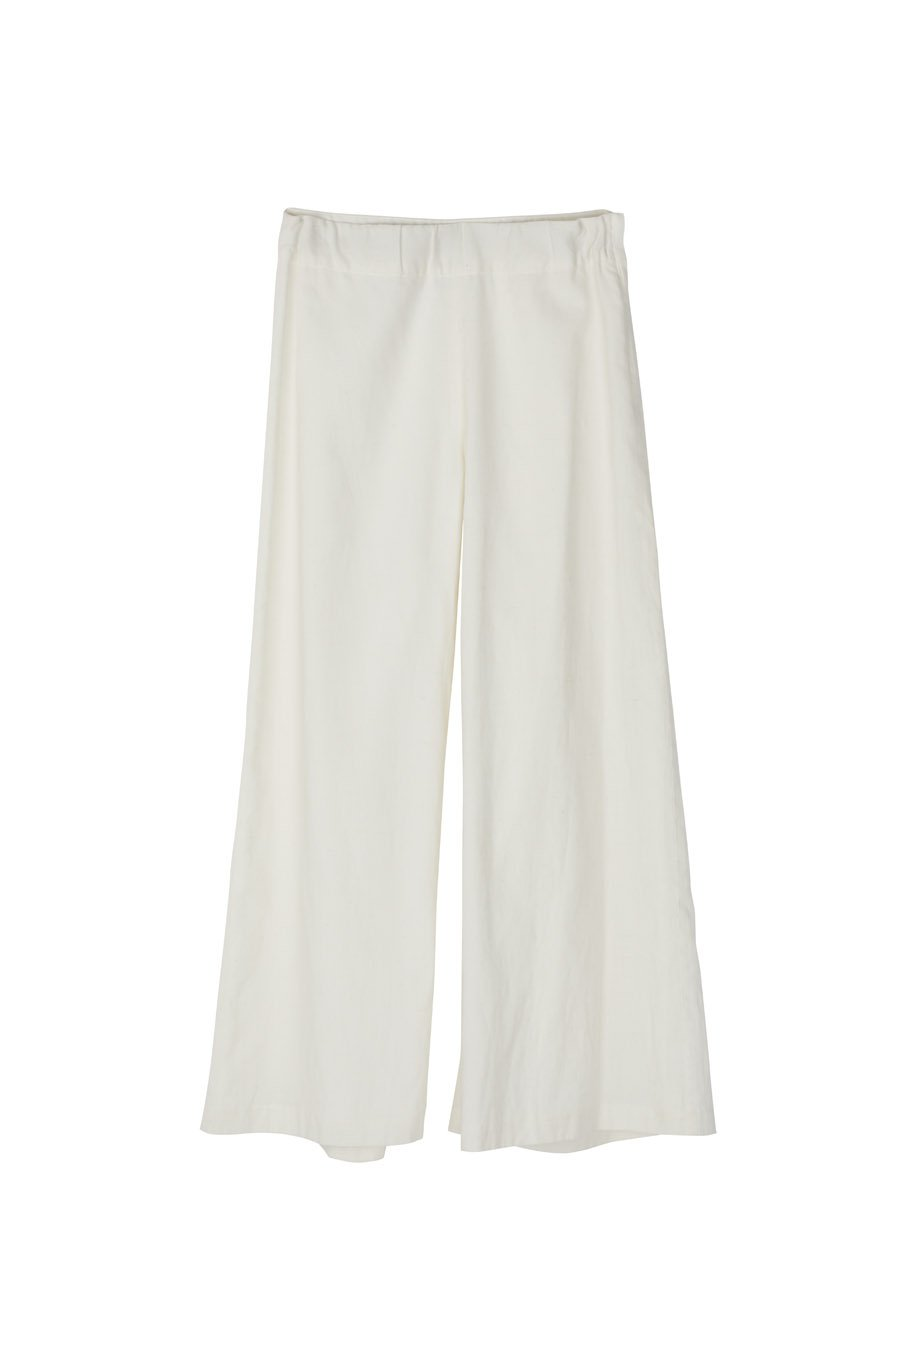 BRIDGET TROUSERS - WHITE Trousers Stylein